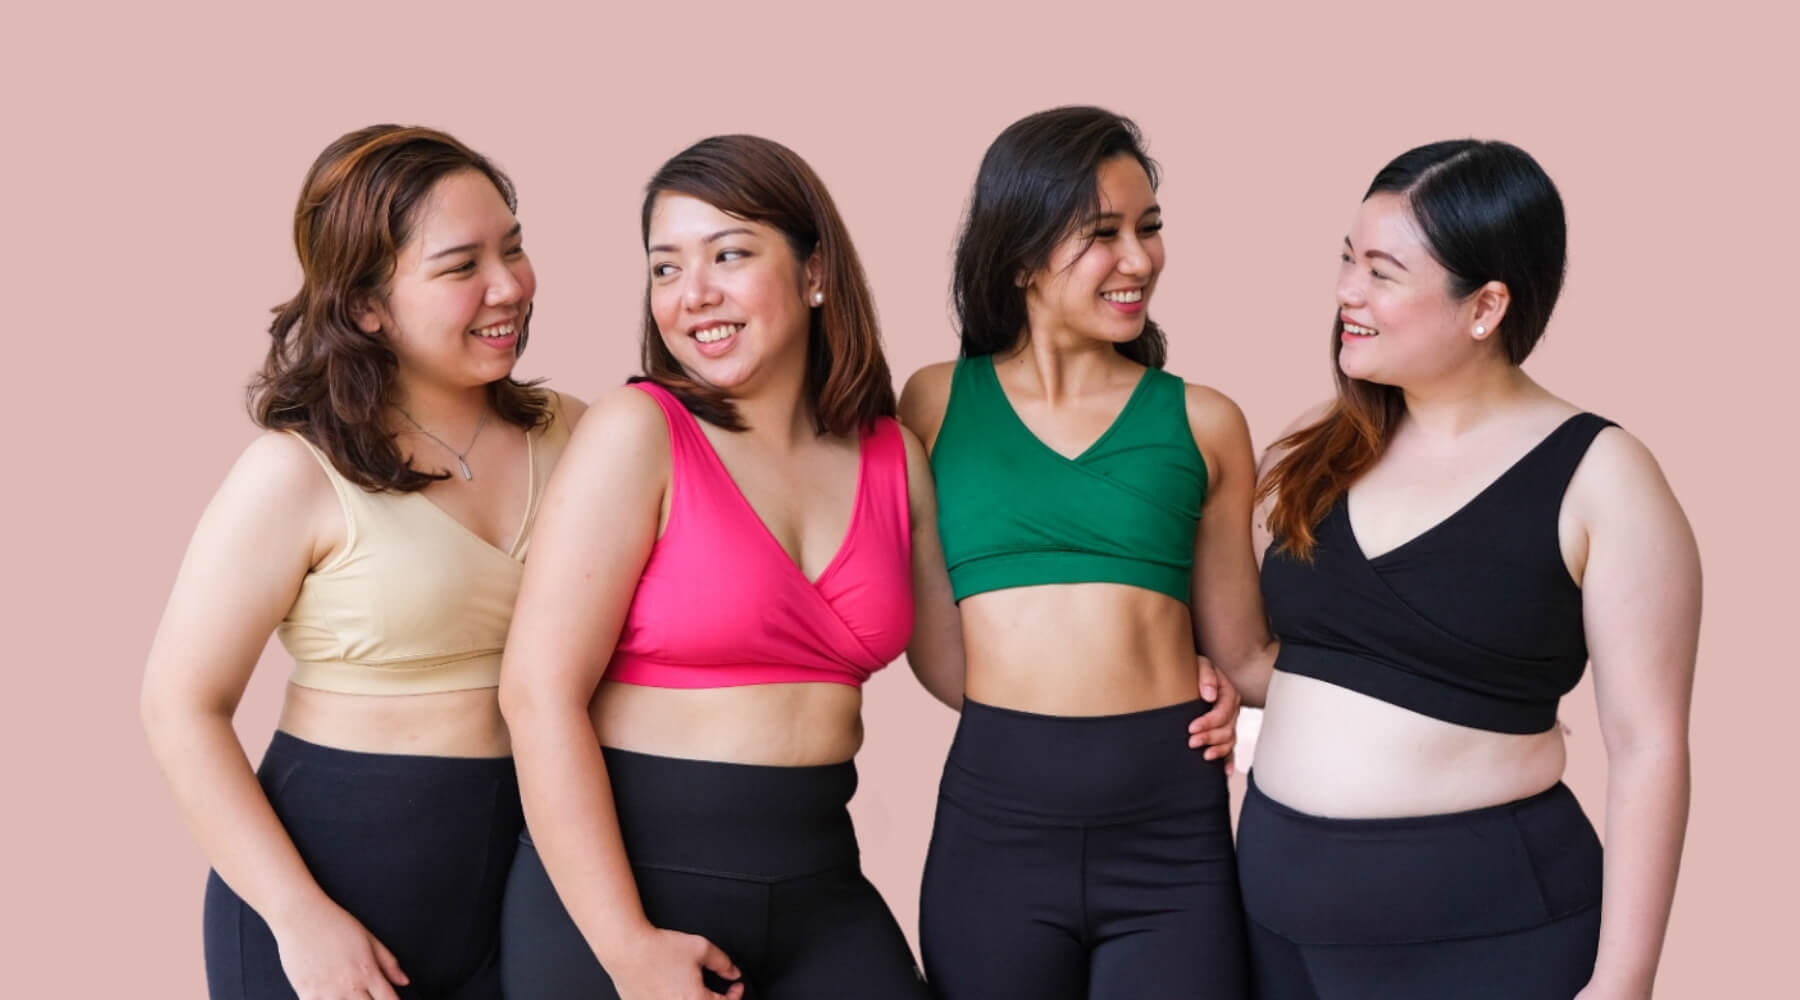 bloomthis-sapot-lokal-9-local-malaysian-brands-we-love-2021-08-boss-mama-postpartum-essentials